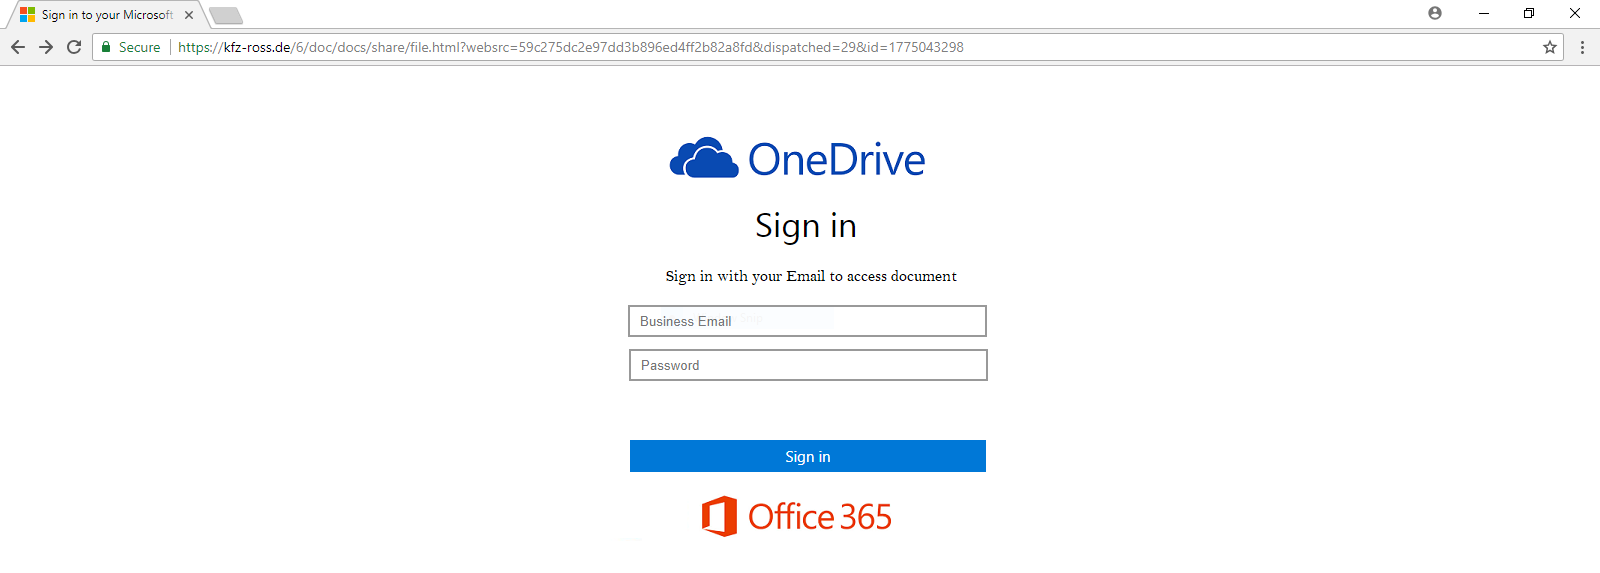 OneDrive  - one drive sign in - Phishing Trap for Microsoft Users | Phishing Attacks